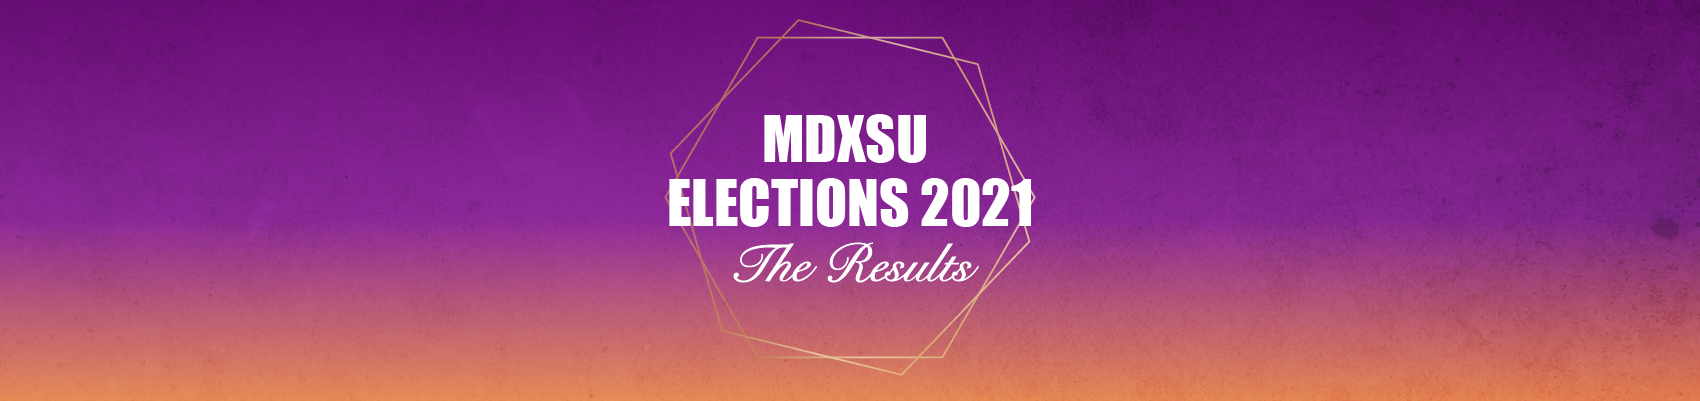 MDXSU Elections 2021 - The Results